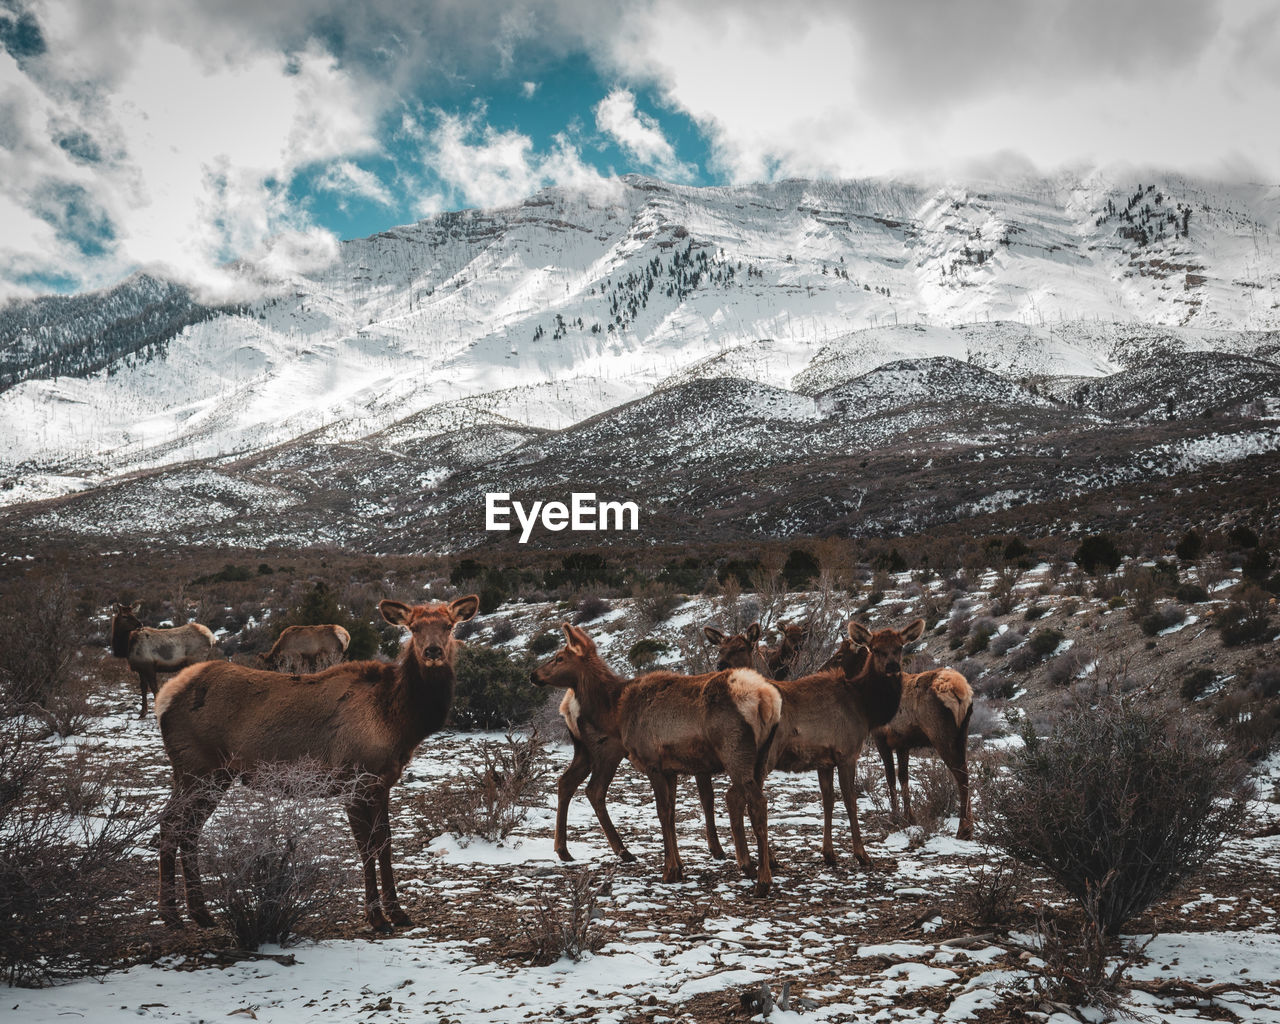 HORSES IN SNOW COVERED LAND